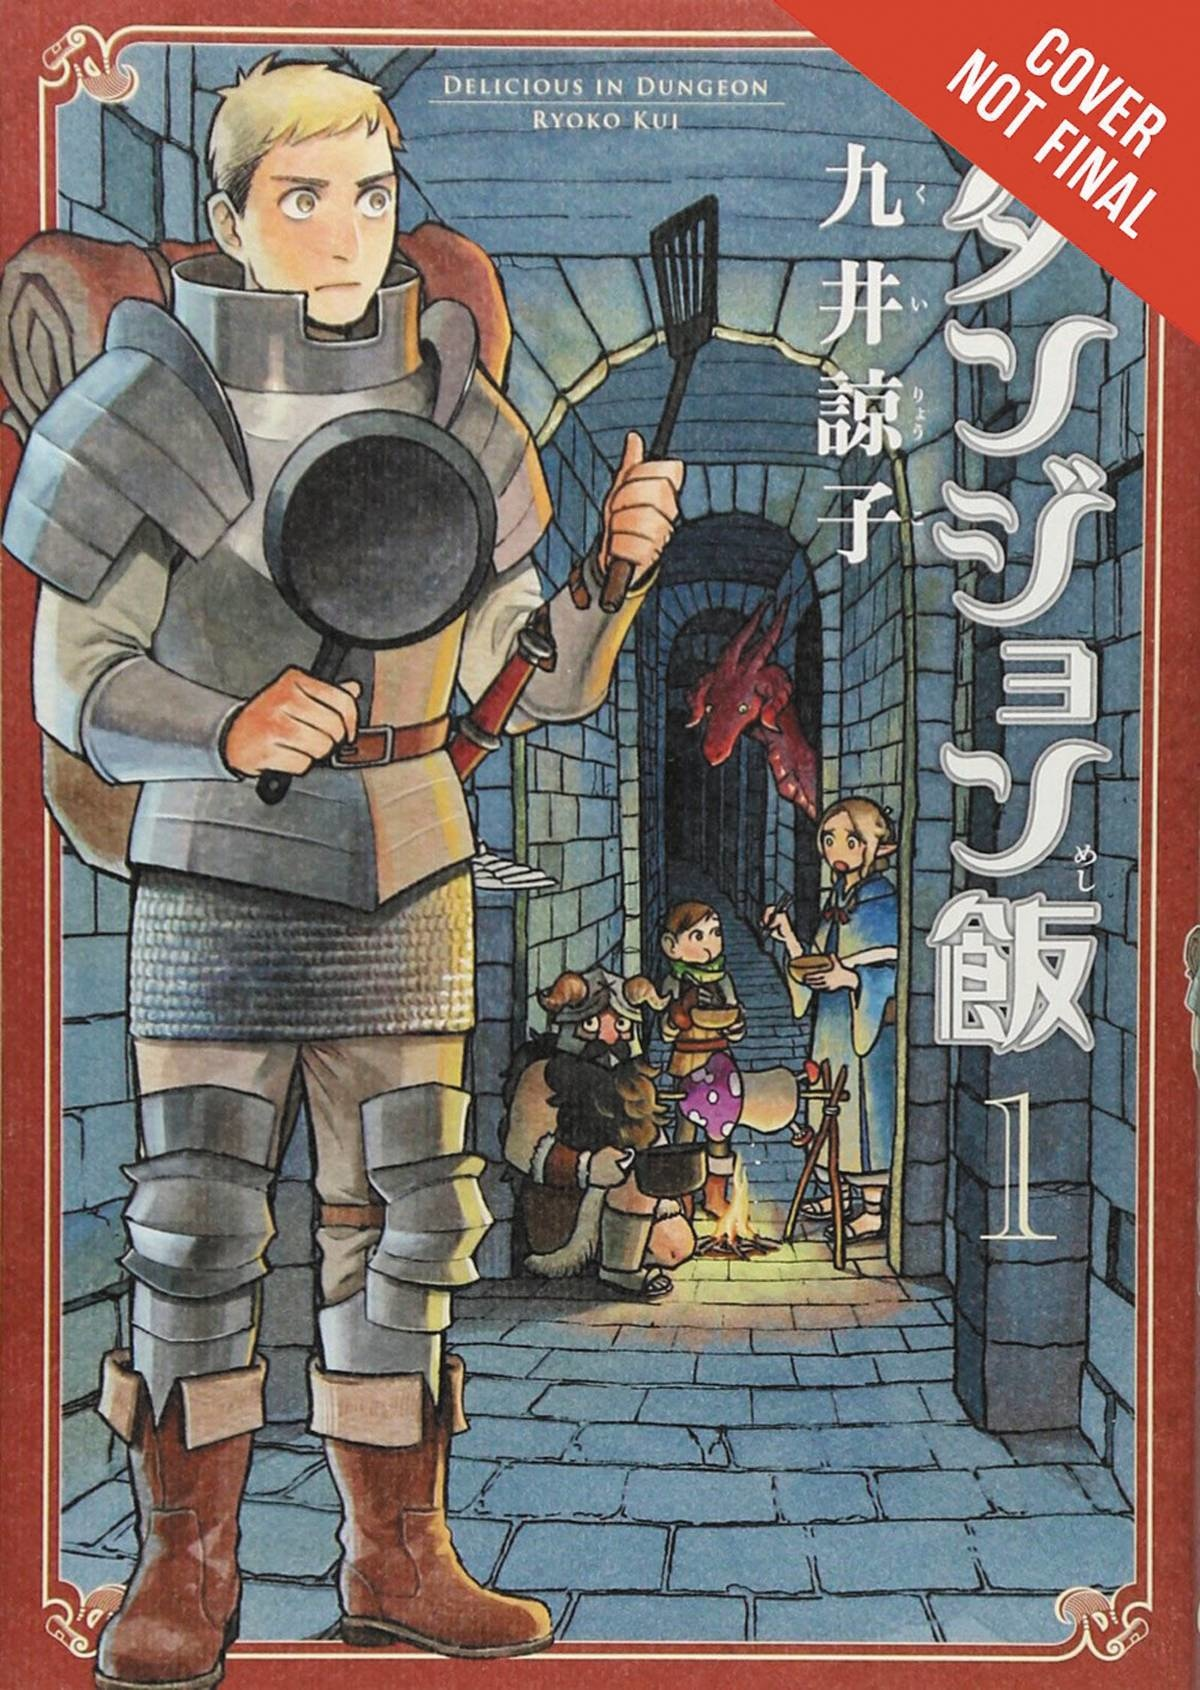 Delicious in Dungeon v.1 & 2 Bookclub special